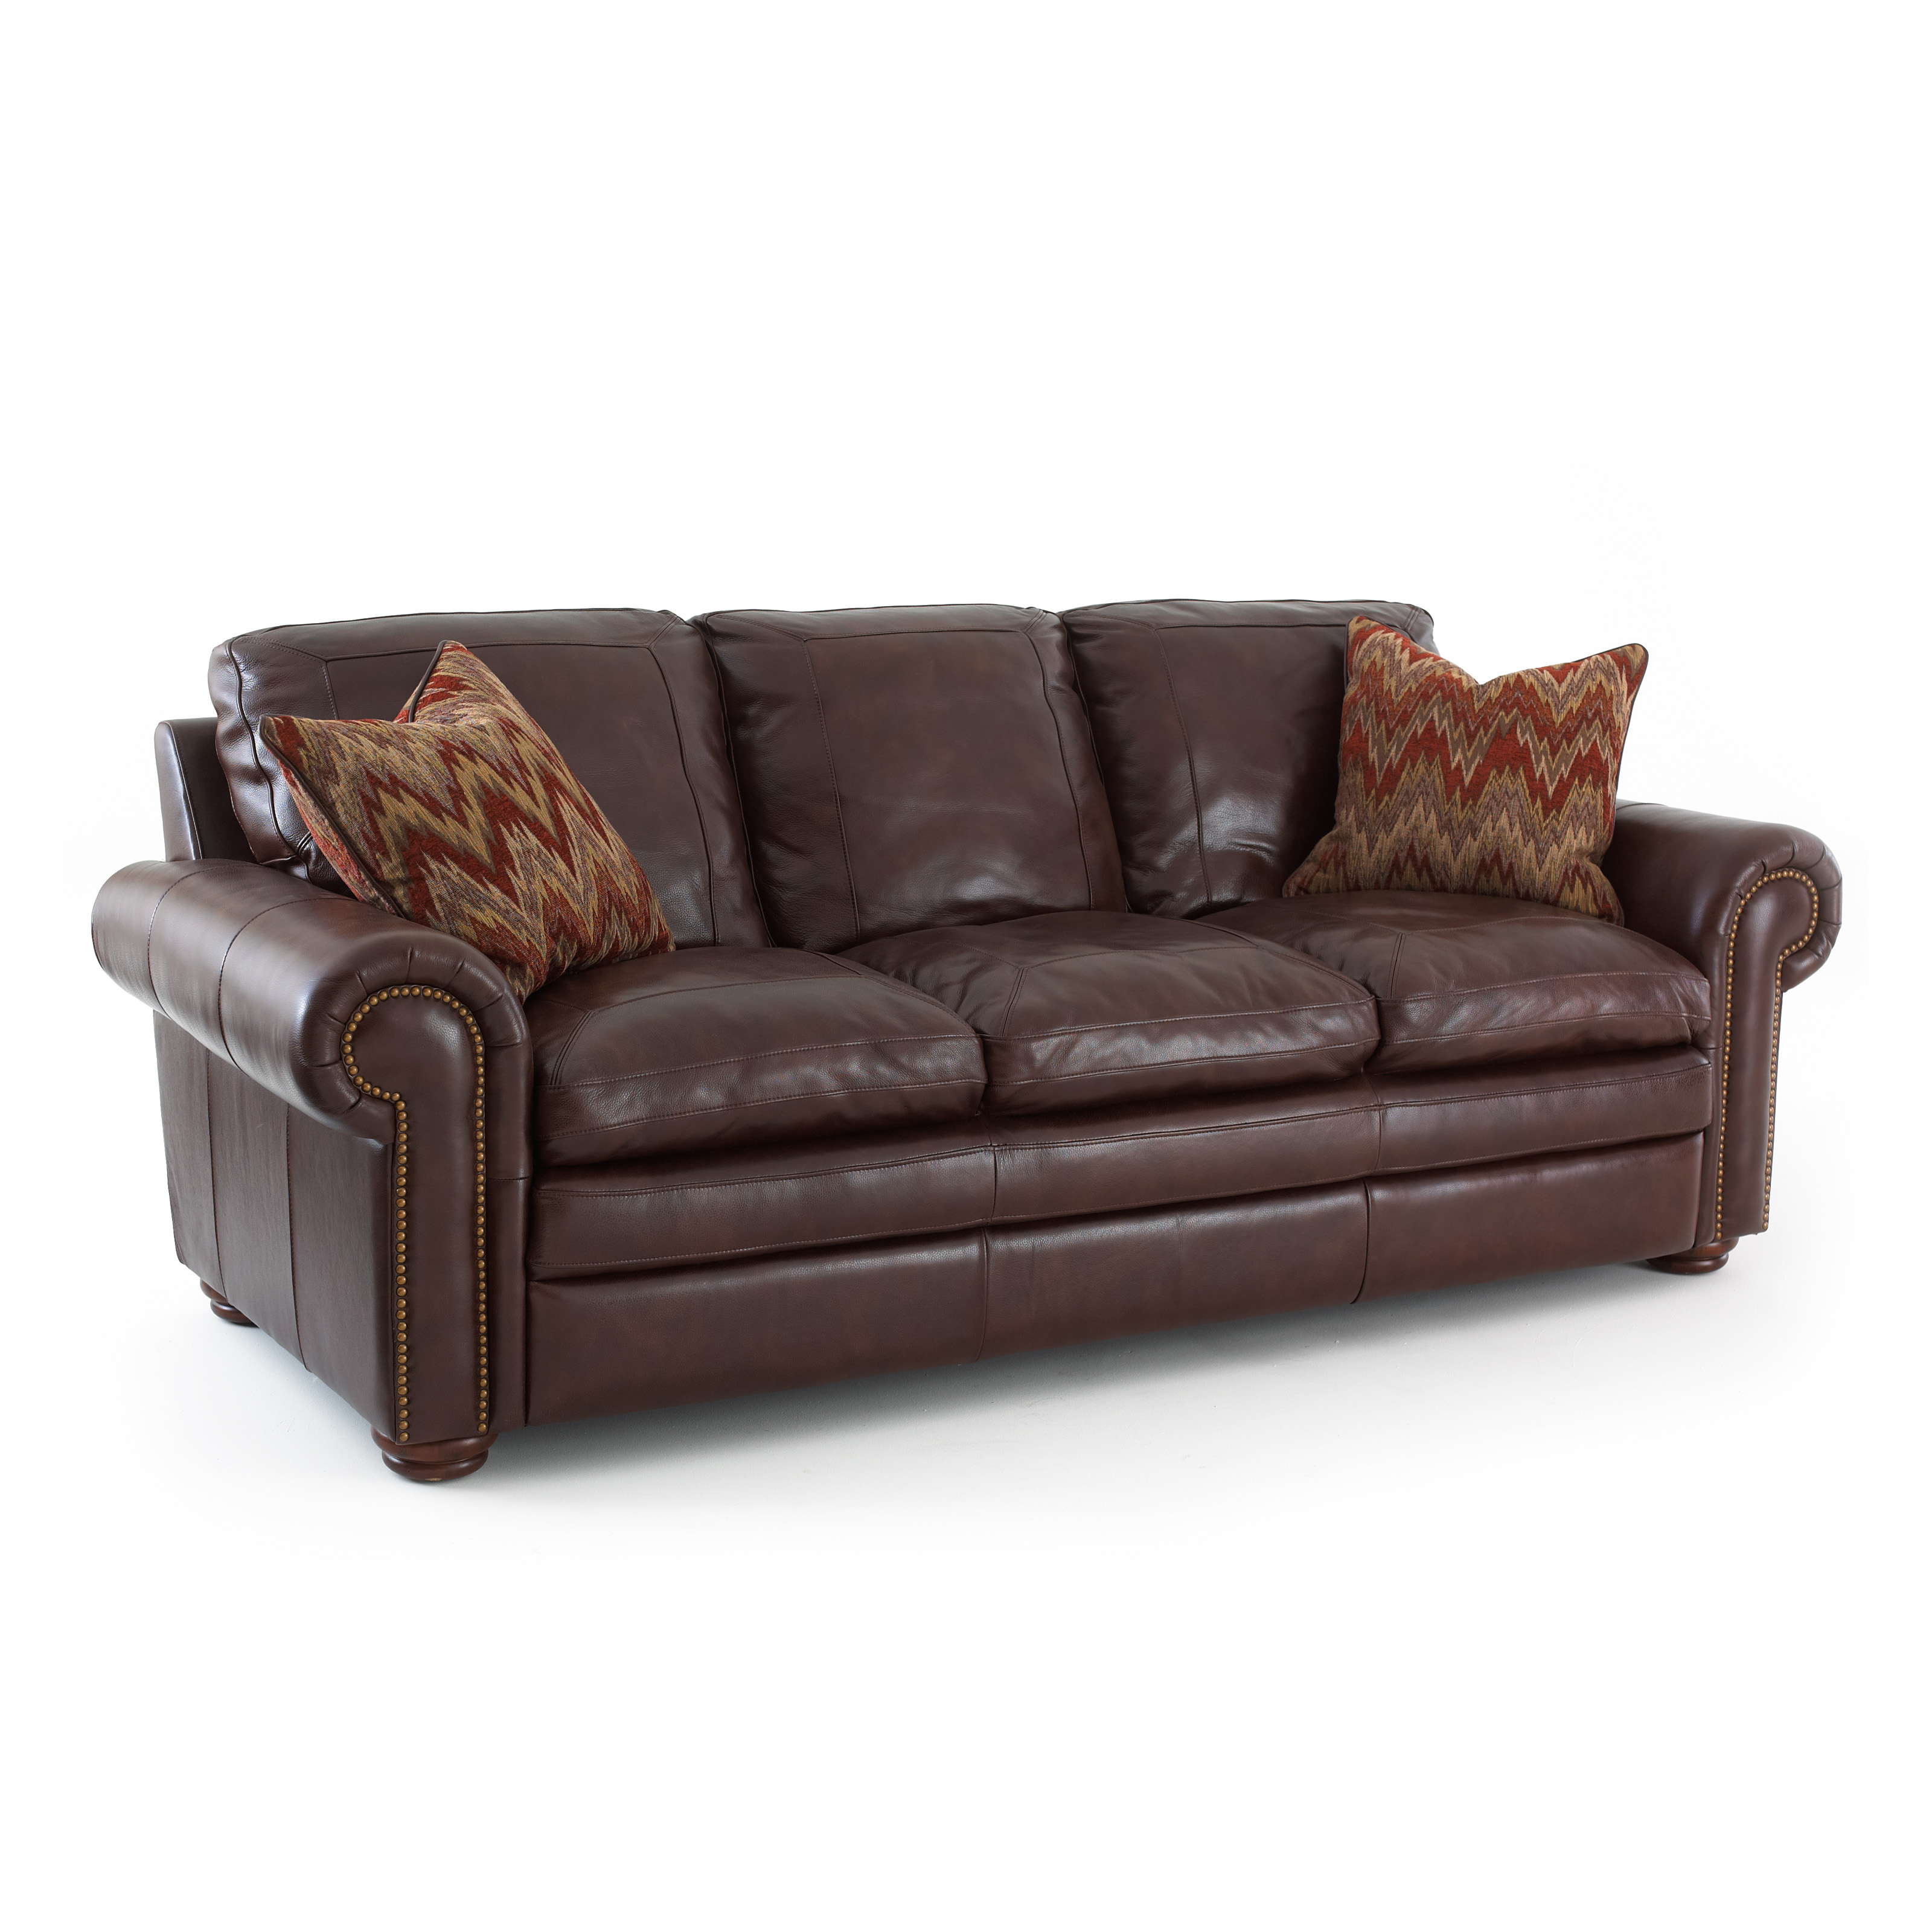 silver sofas brown colour sofa sets steve yosemite leather with 2 accent pillows